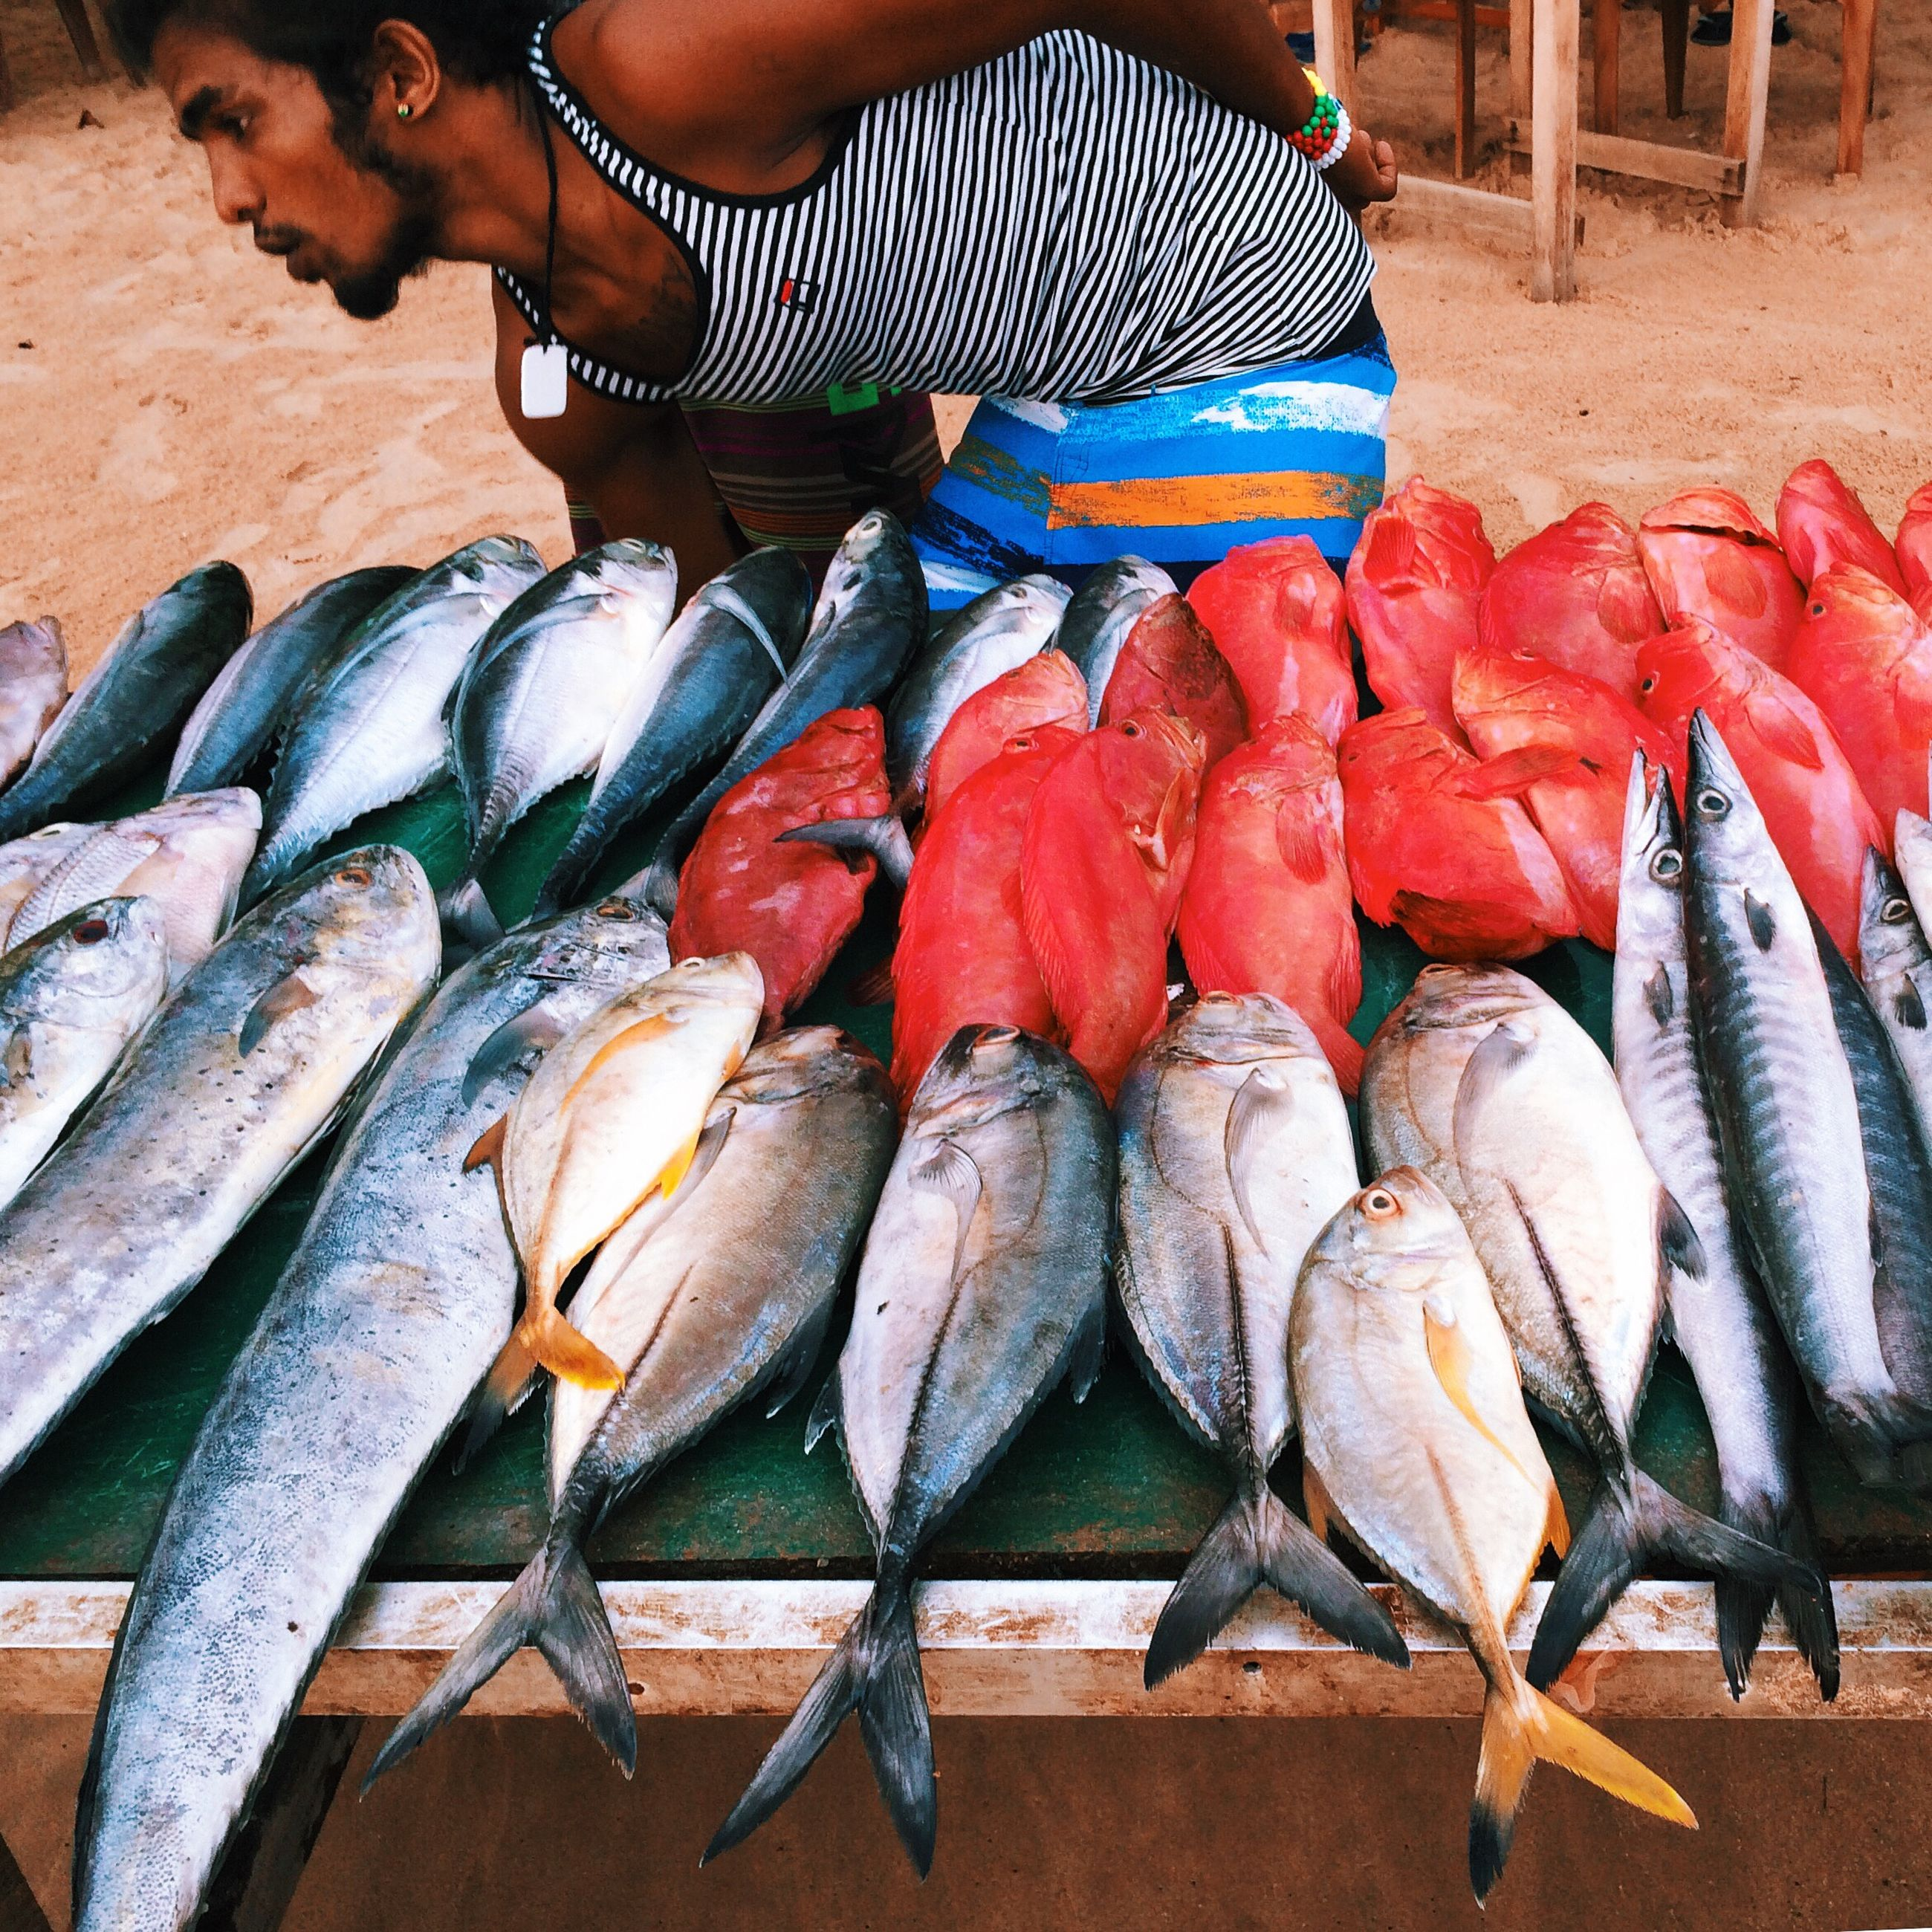 fish, food, food and drink, healthy eating, animal themes, abundance, seafood, dead animal, raw food, large group of objects, market, market stall, retail, high angle view, for sale, animals in the wild, variation, outdoors, one person